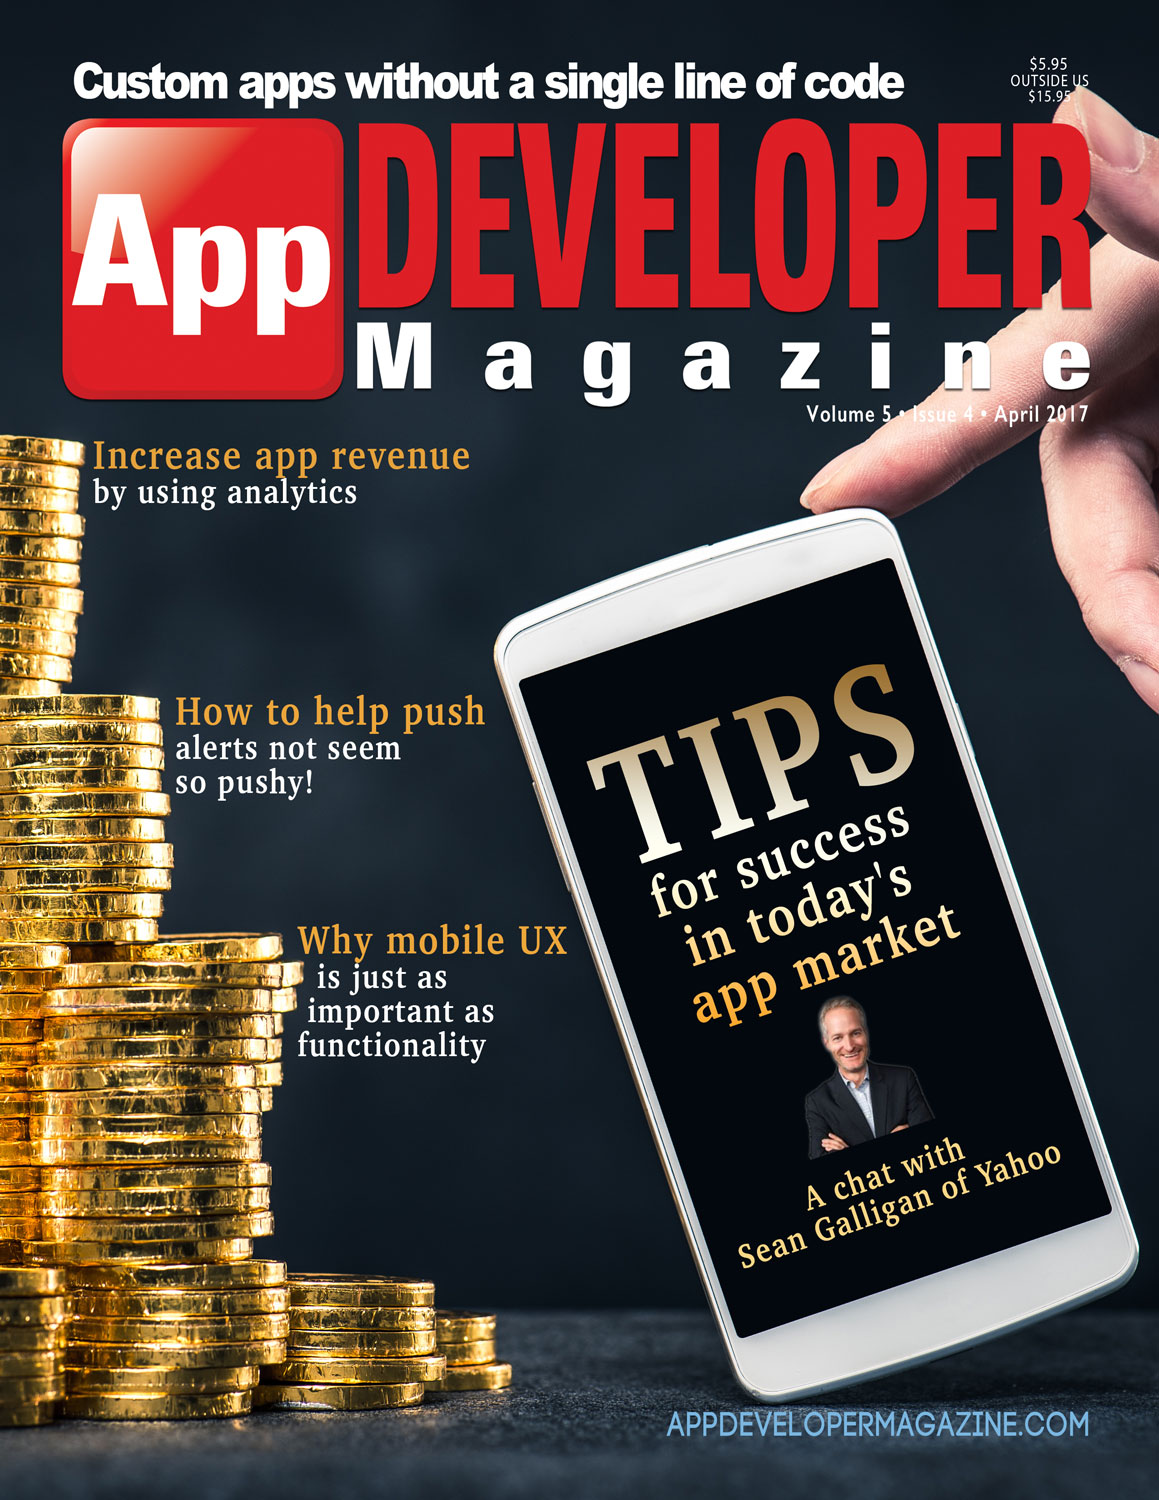 App Developer Magazine April 2017